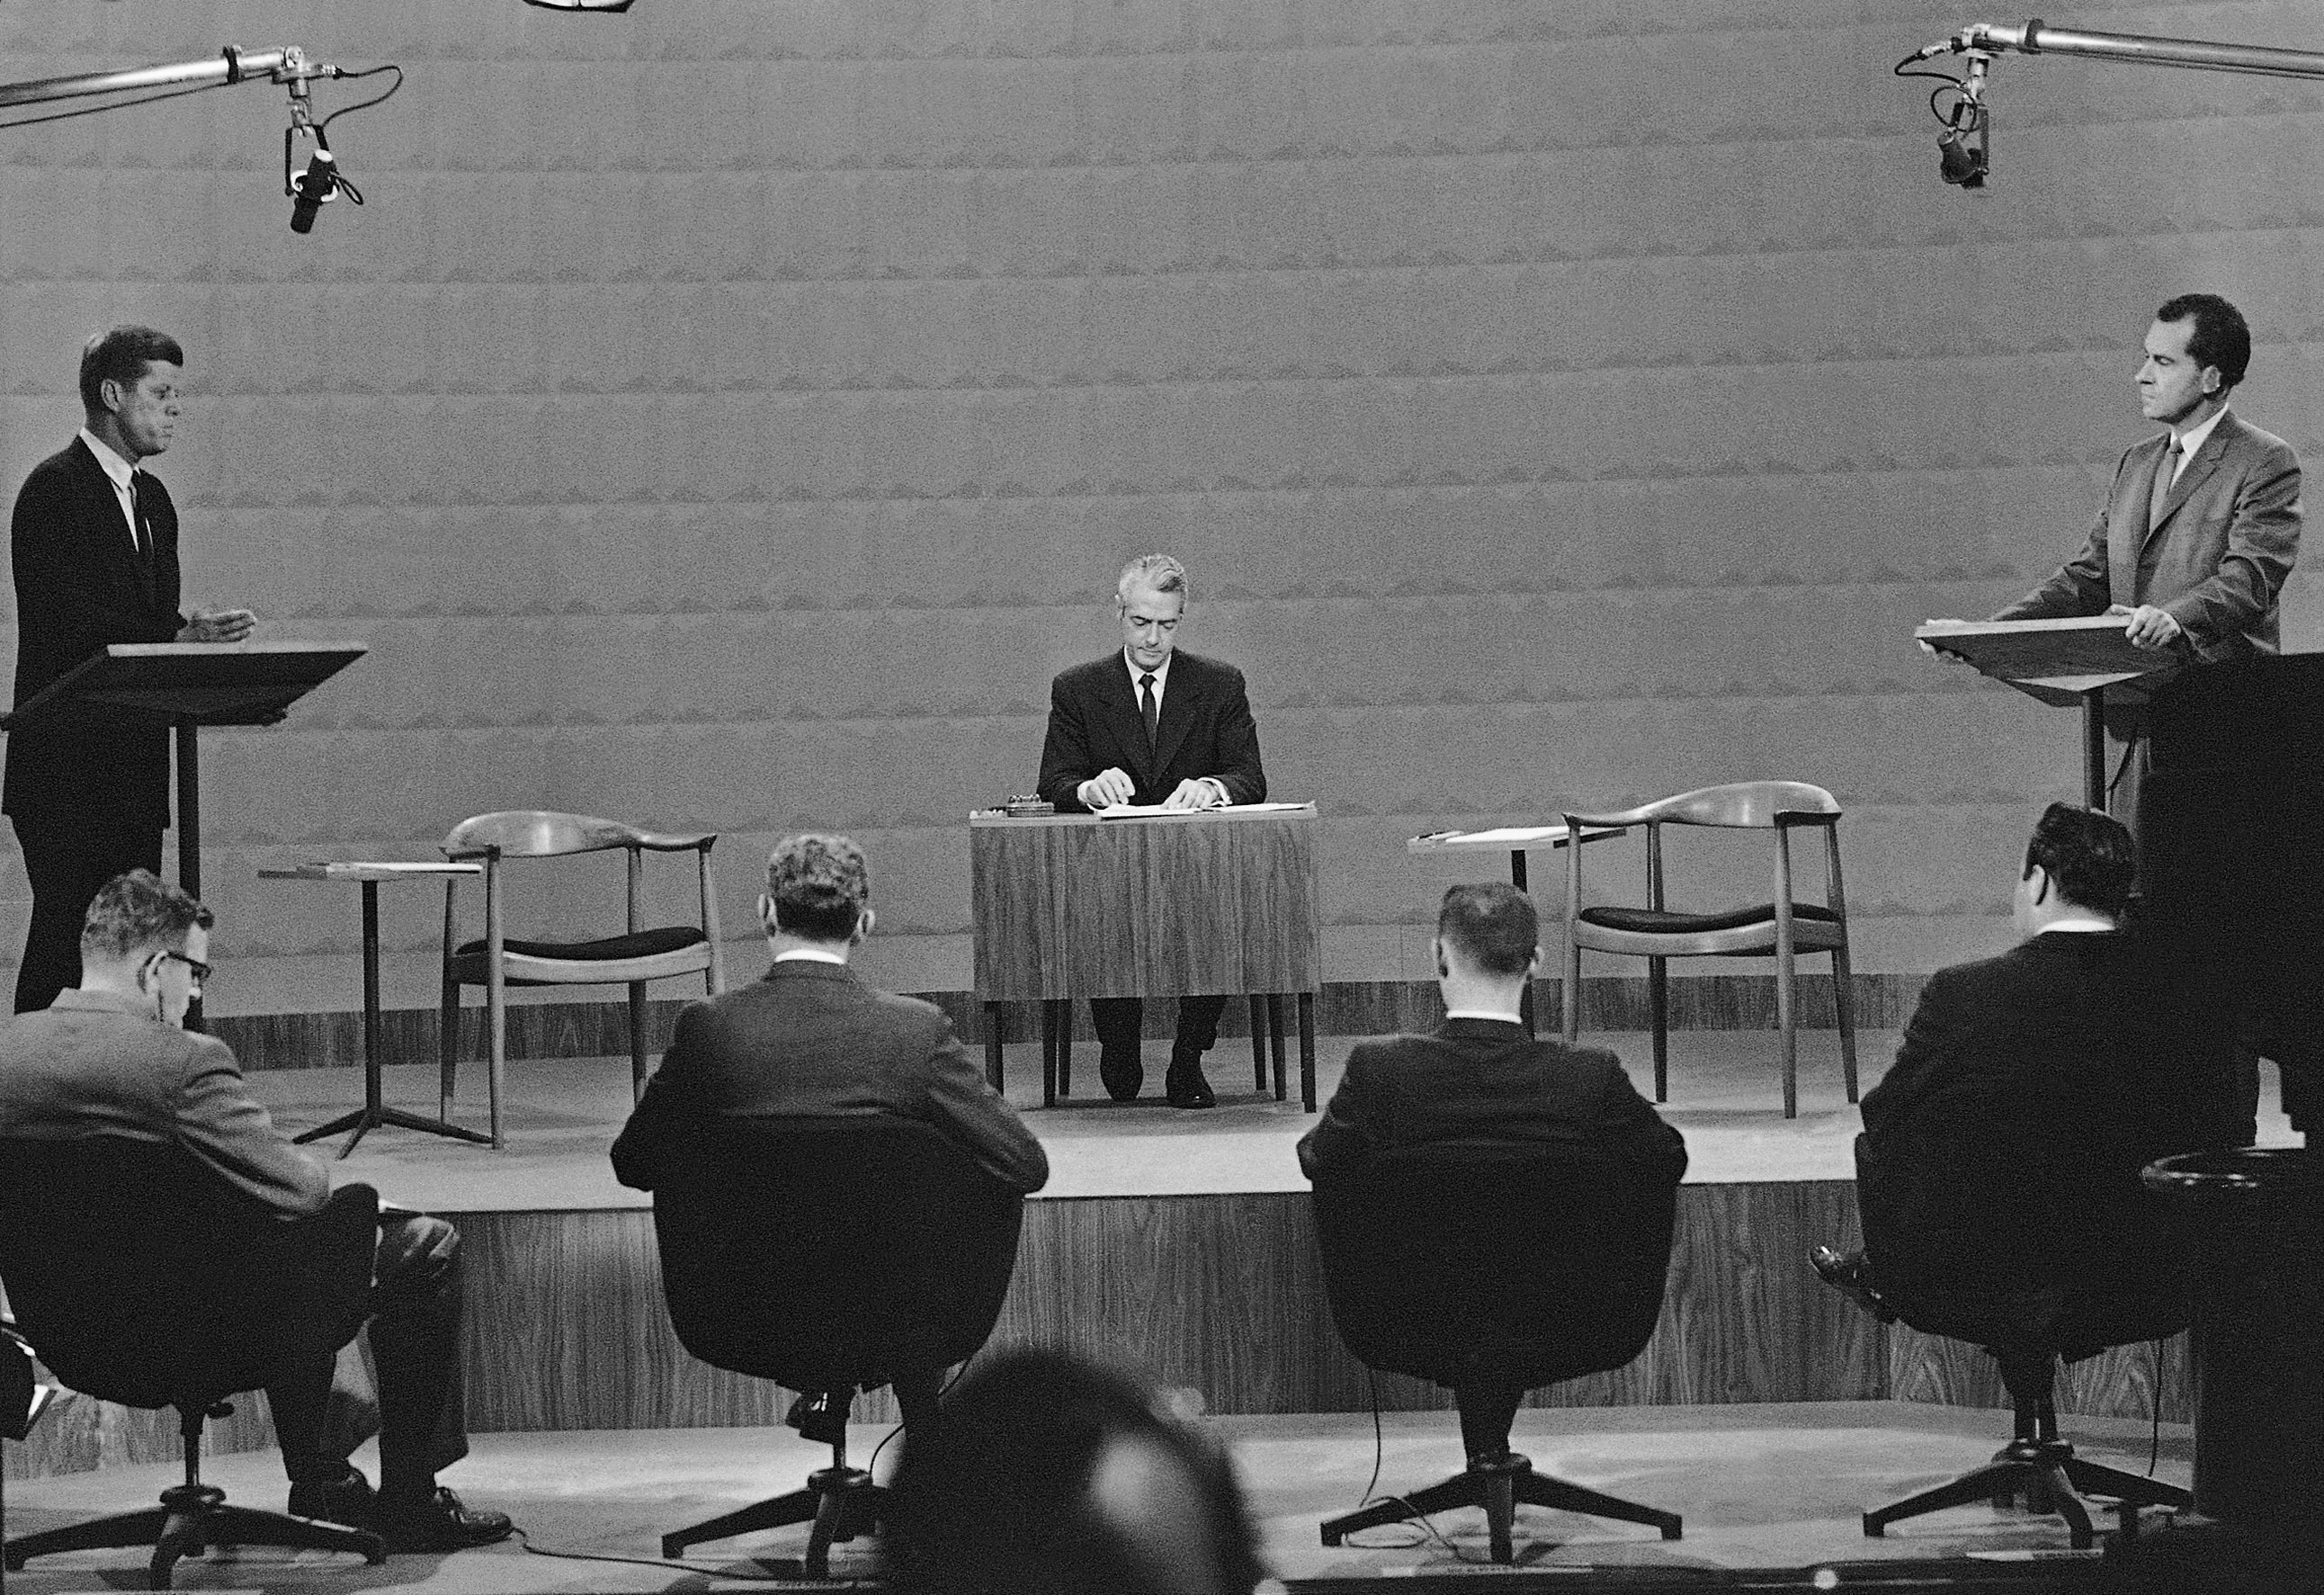 With first televised presidential debate in 1960, candidates learned appearance matters